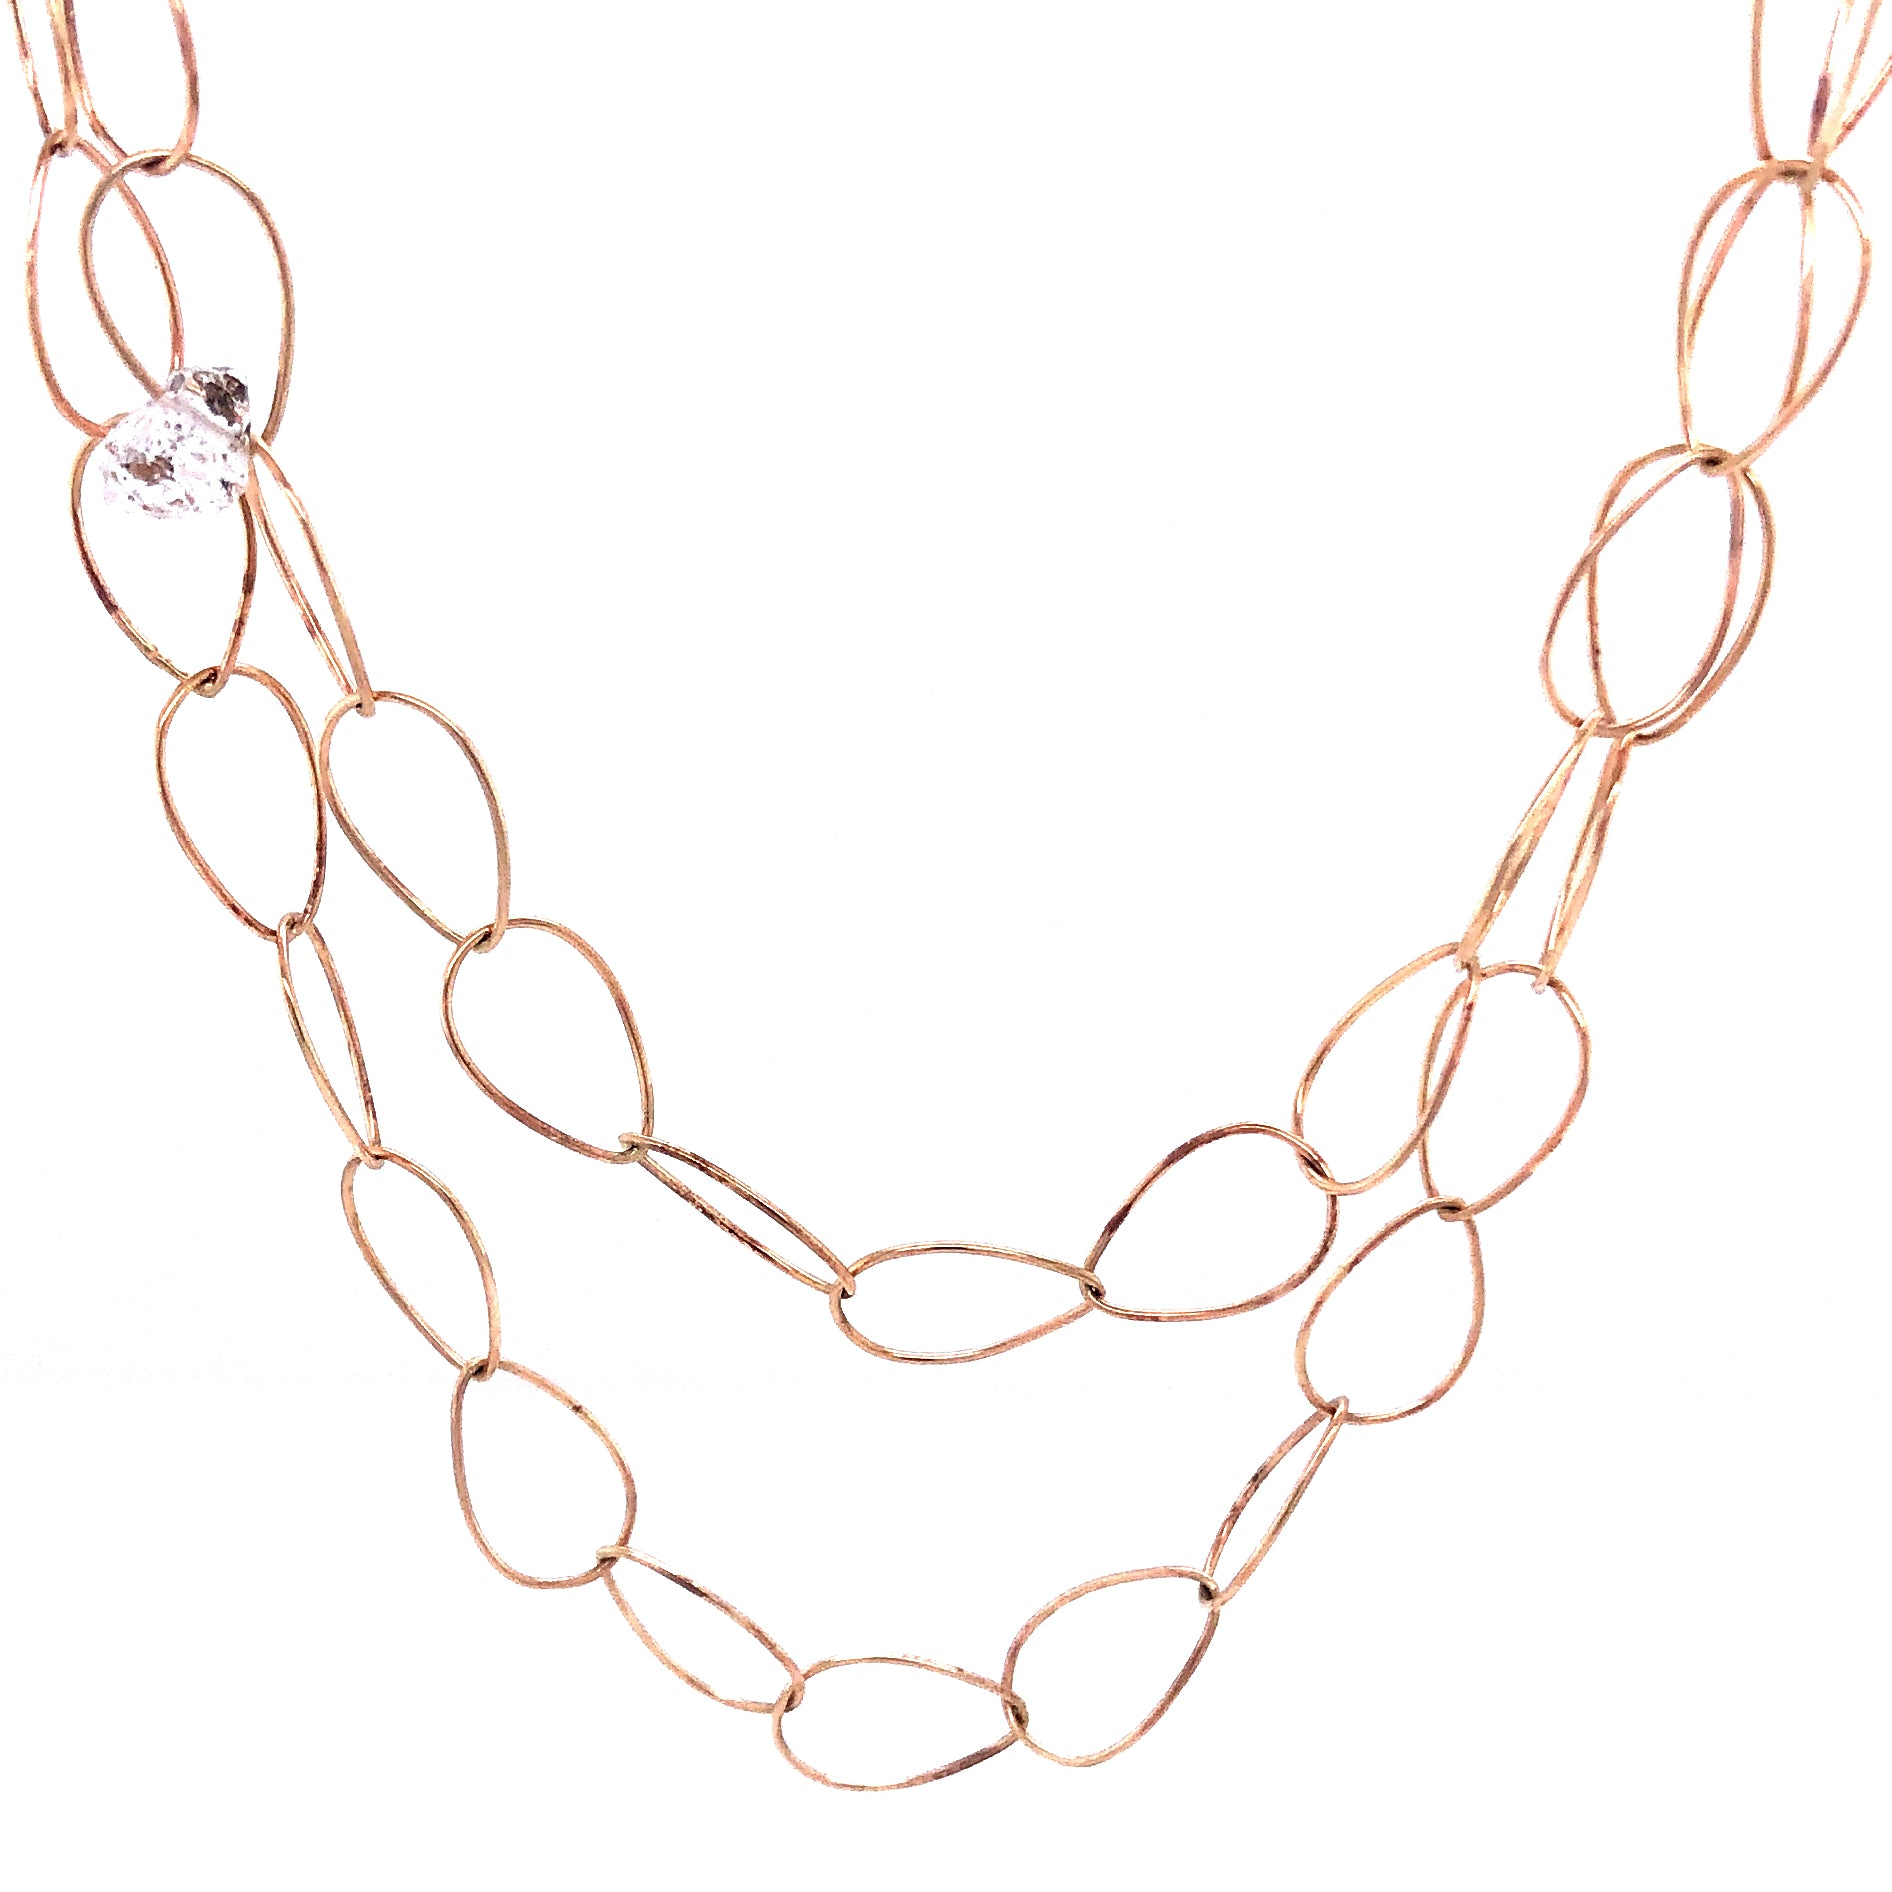 Delicate Gold Pear Link Chain Necklace with Herkimers, Handmade 14k Gold